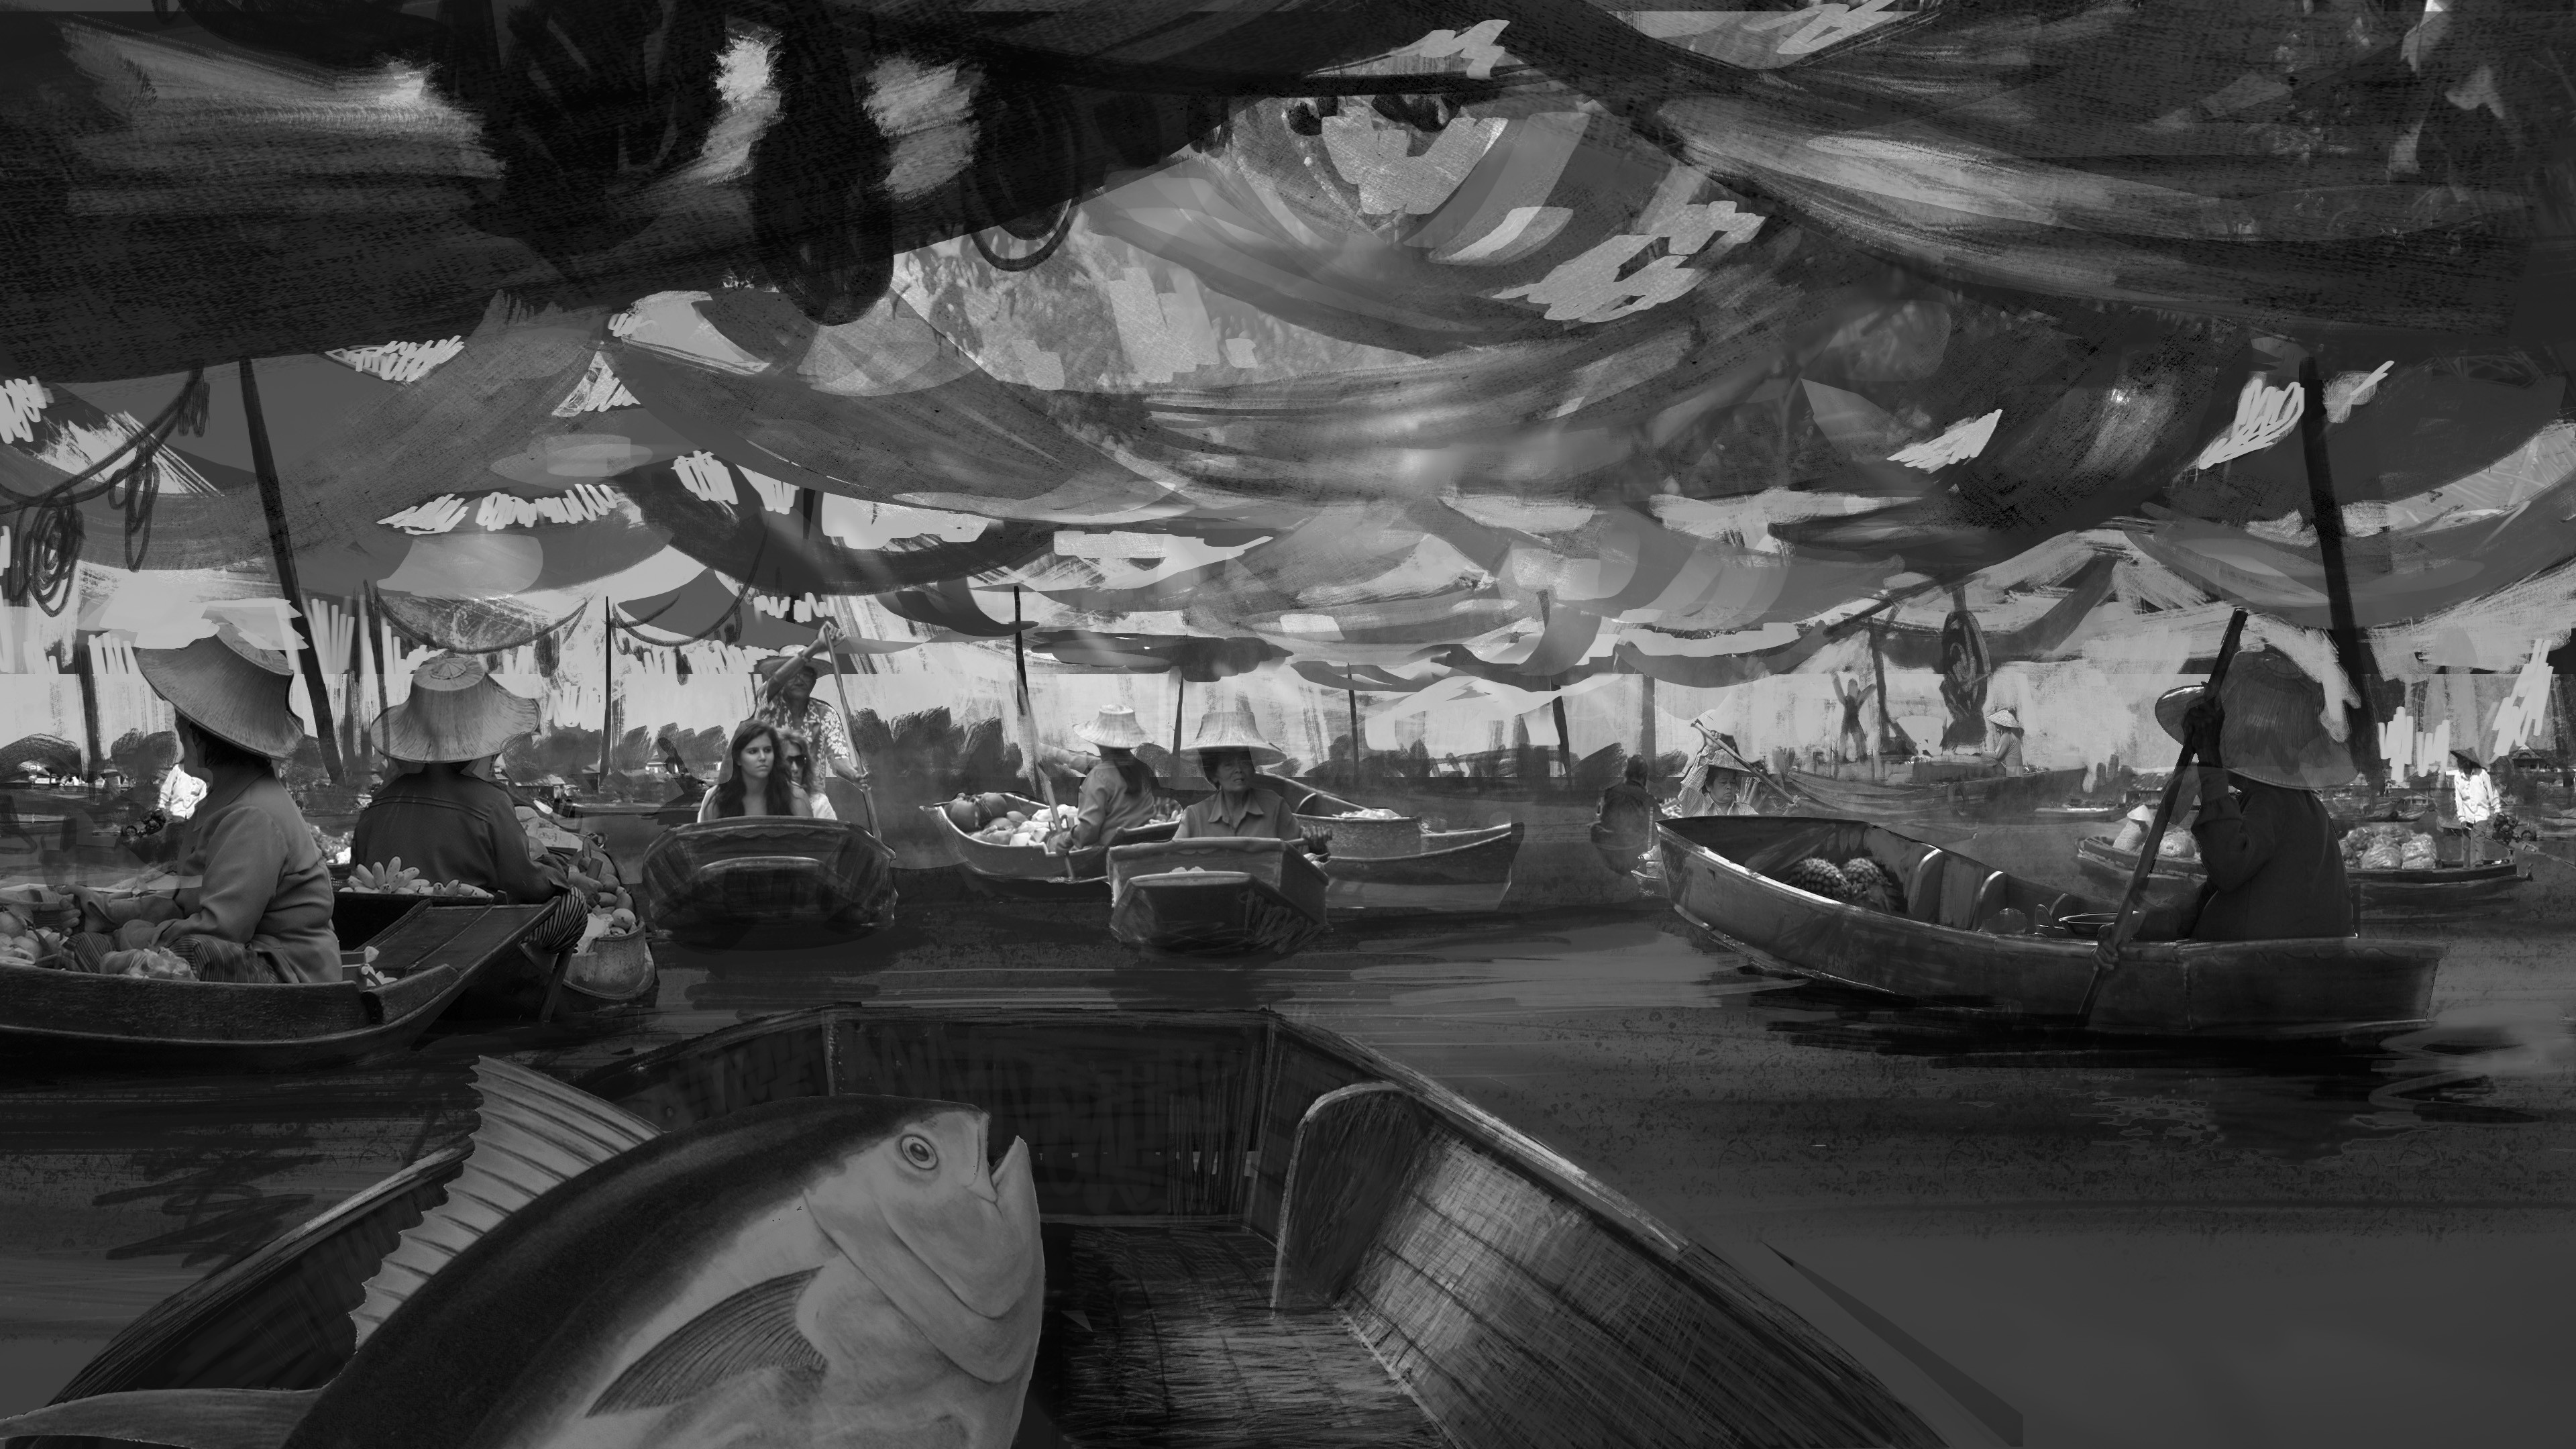 As in the sketch, i started adding some hanging drapery, had a hard time figuring out the shapes.